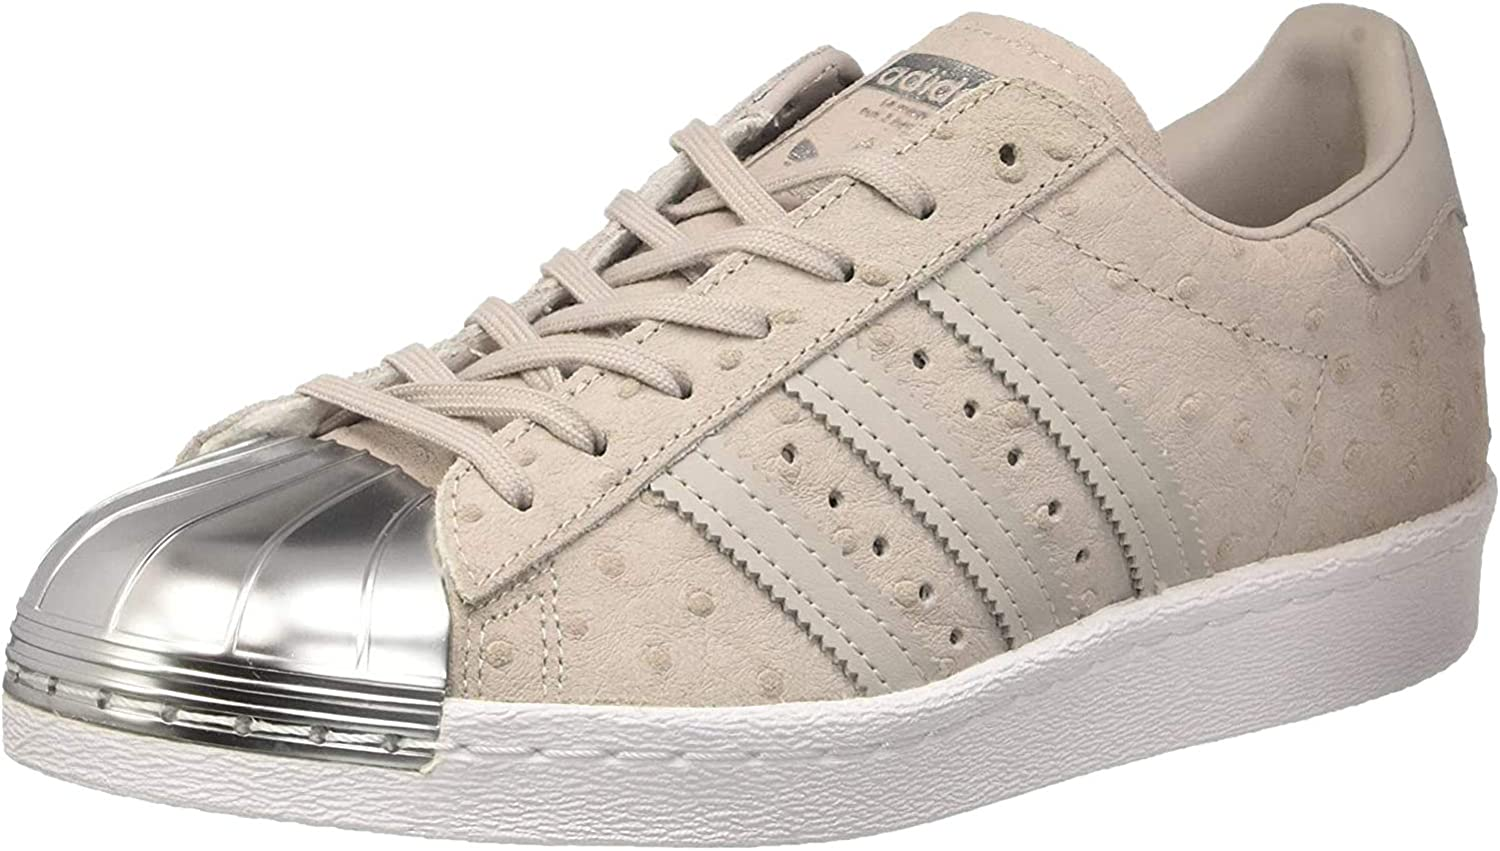 adidas Superstar 80s Metal Toe W chaussures 3,5 grey/silver, Gris ...